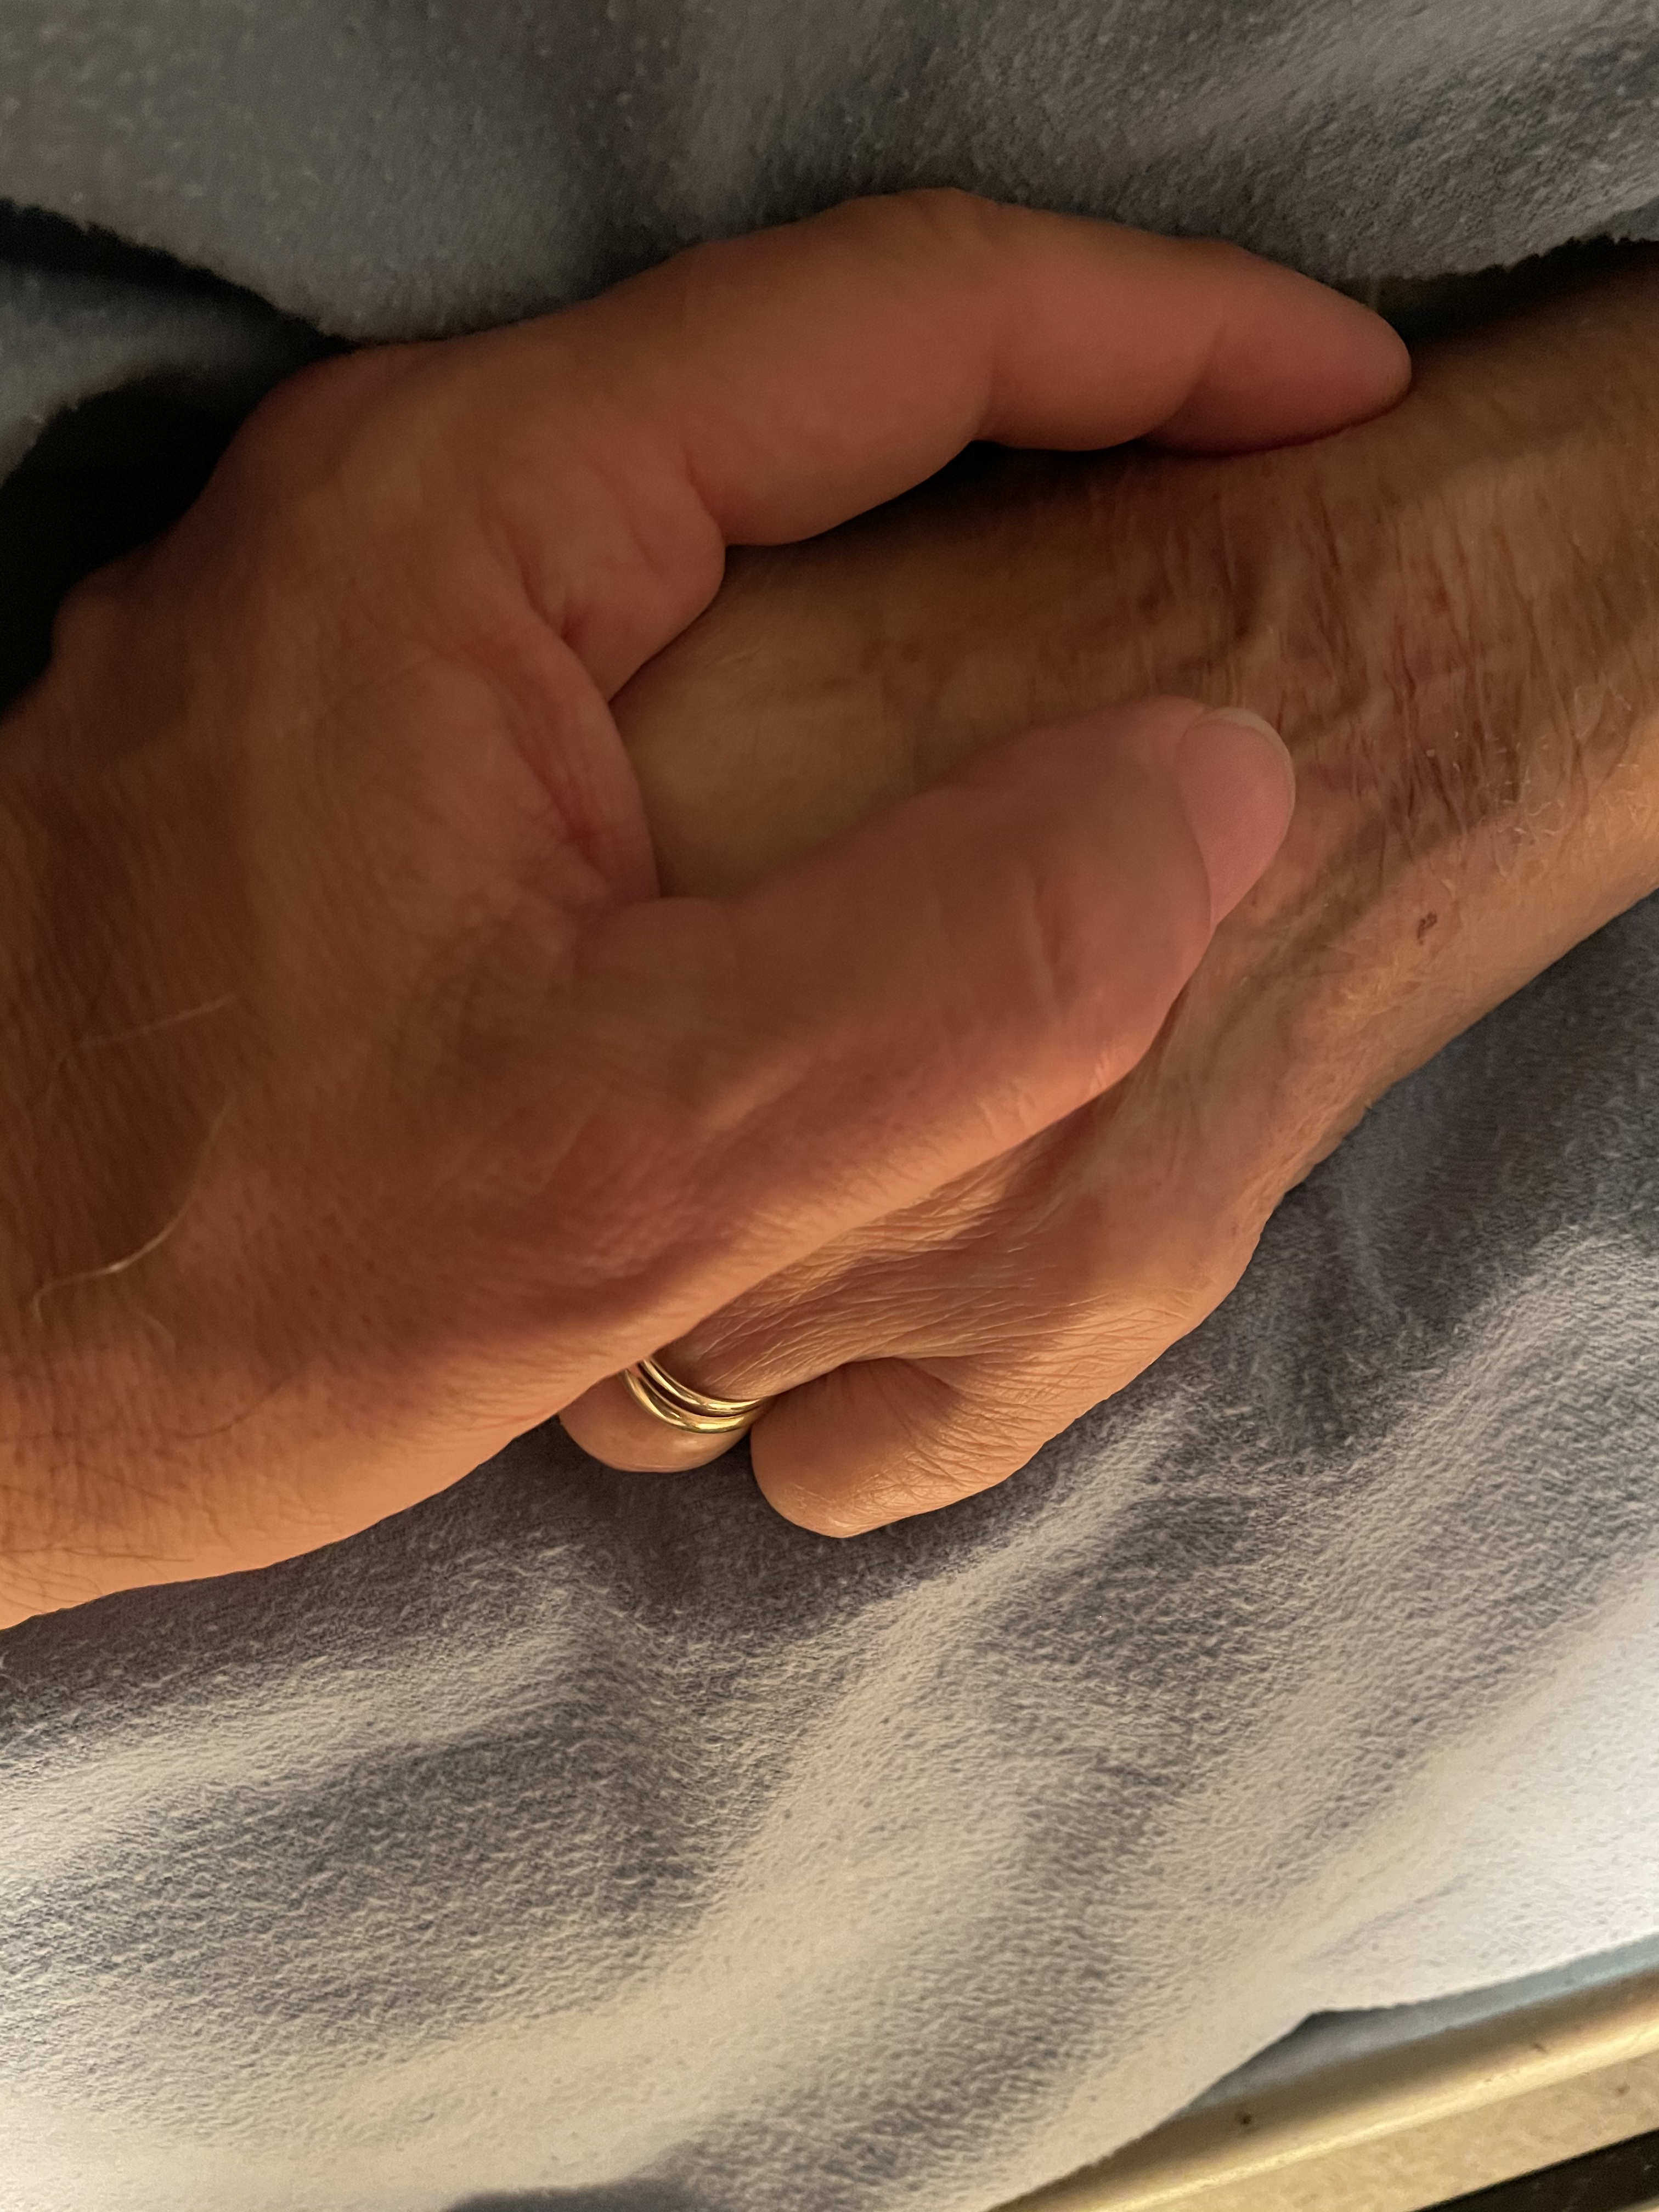 Mom Holding hands